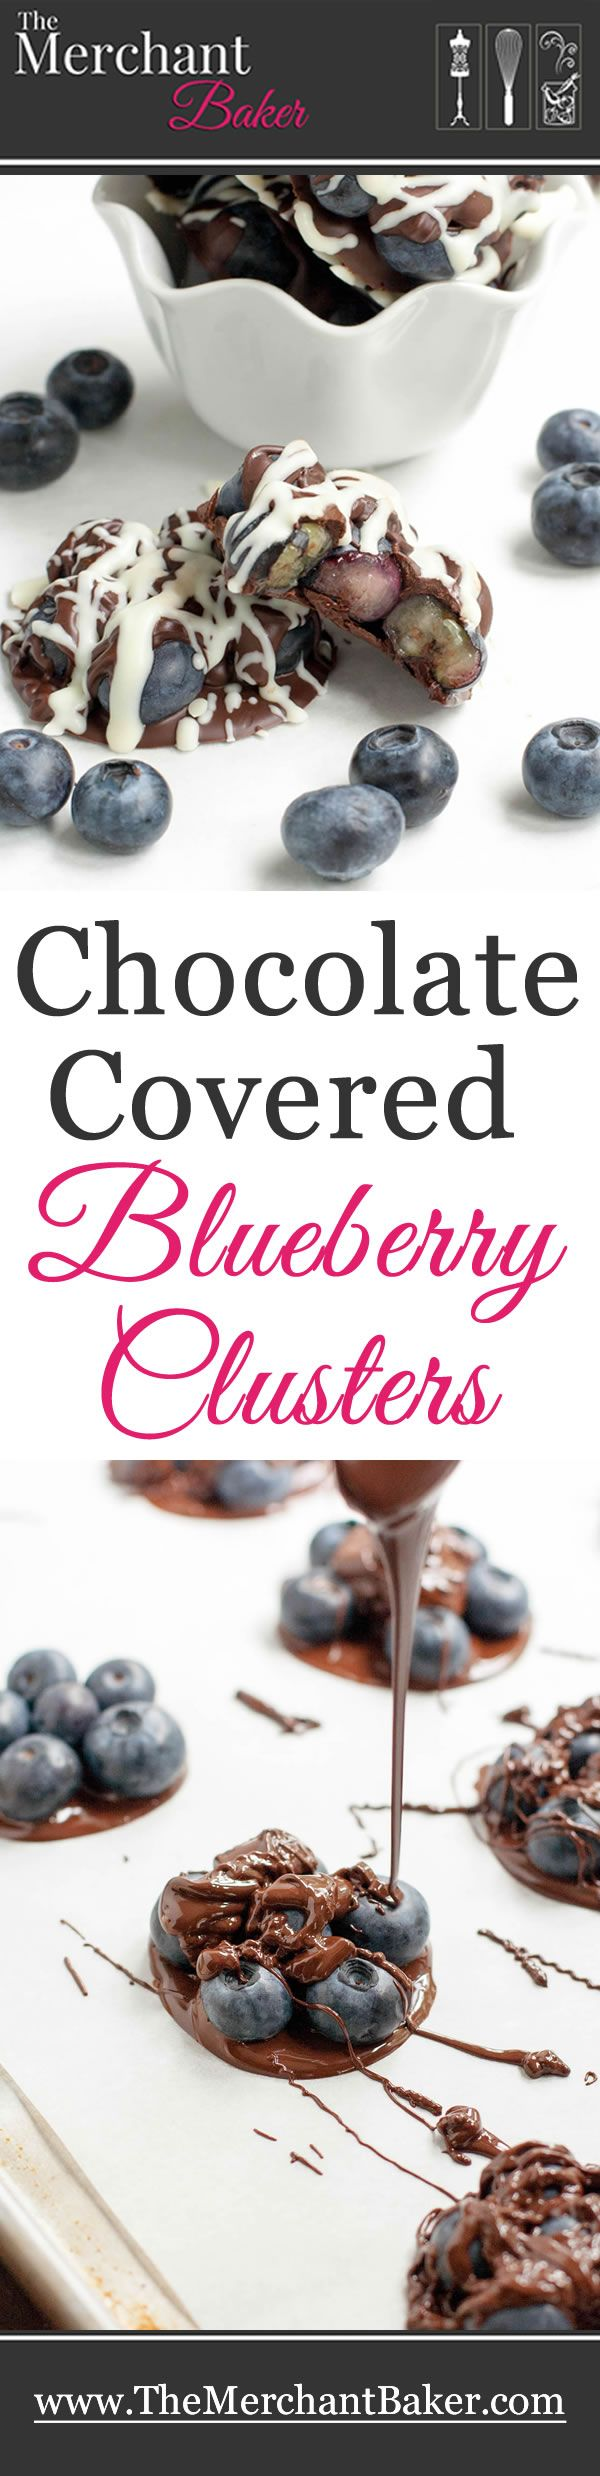 Chocolate Covered Blueberry Clusters. Fresh, plump and juicy blueberries are covered in dark and white chocolates for a refreshingly sweet summer treat!